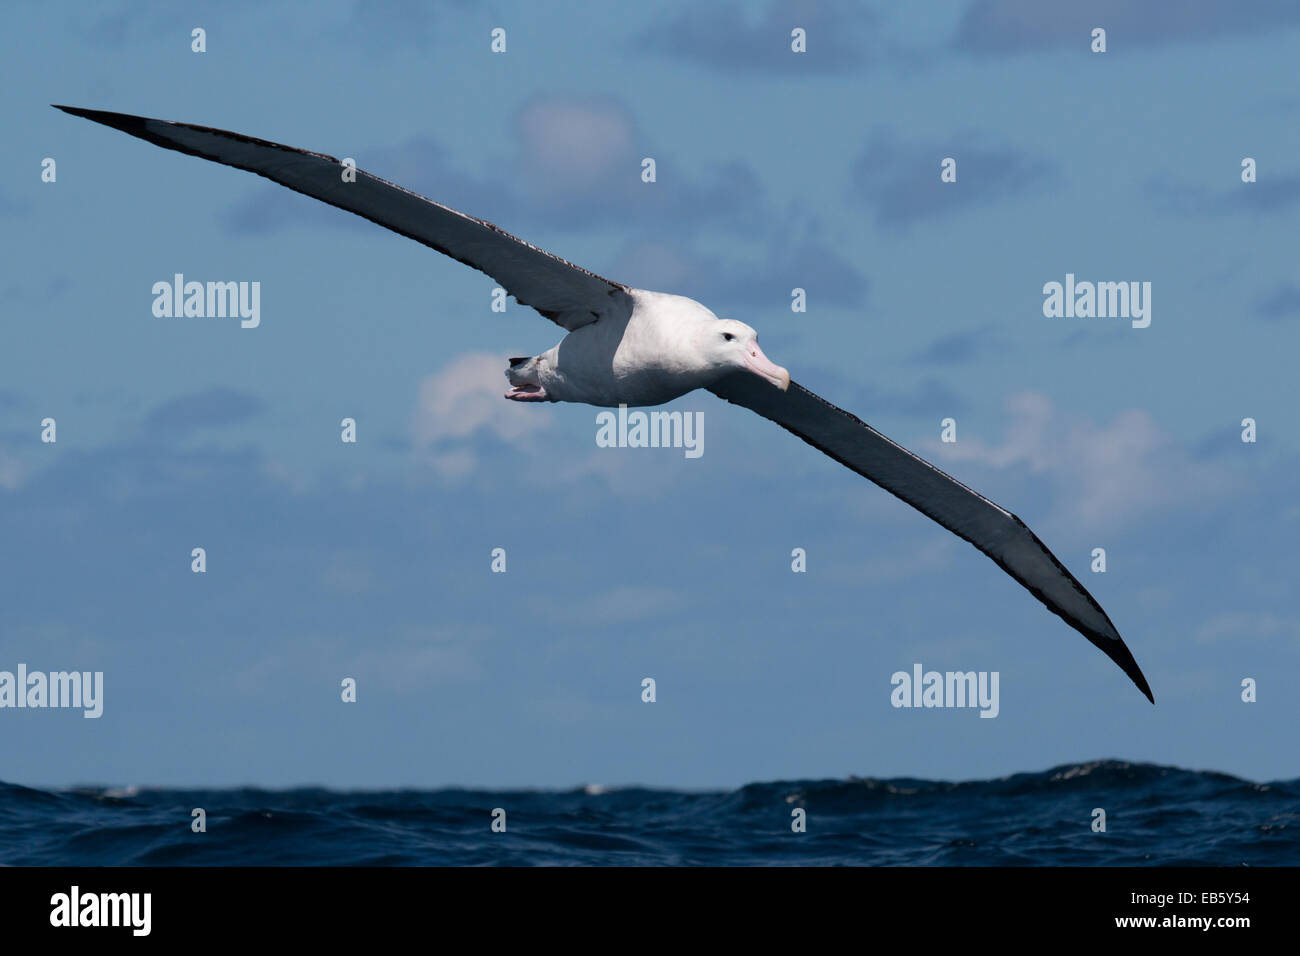 Wandering Albatross (Diomedea exulans) flying over the Pacific Ocean - Stock Image